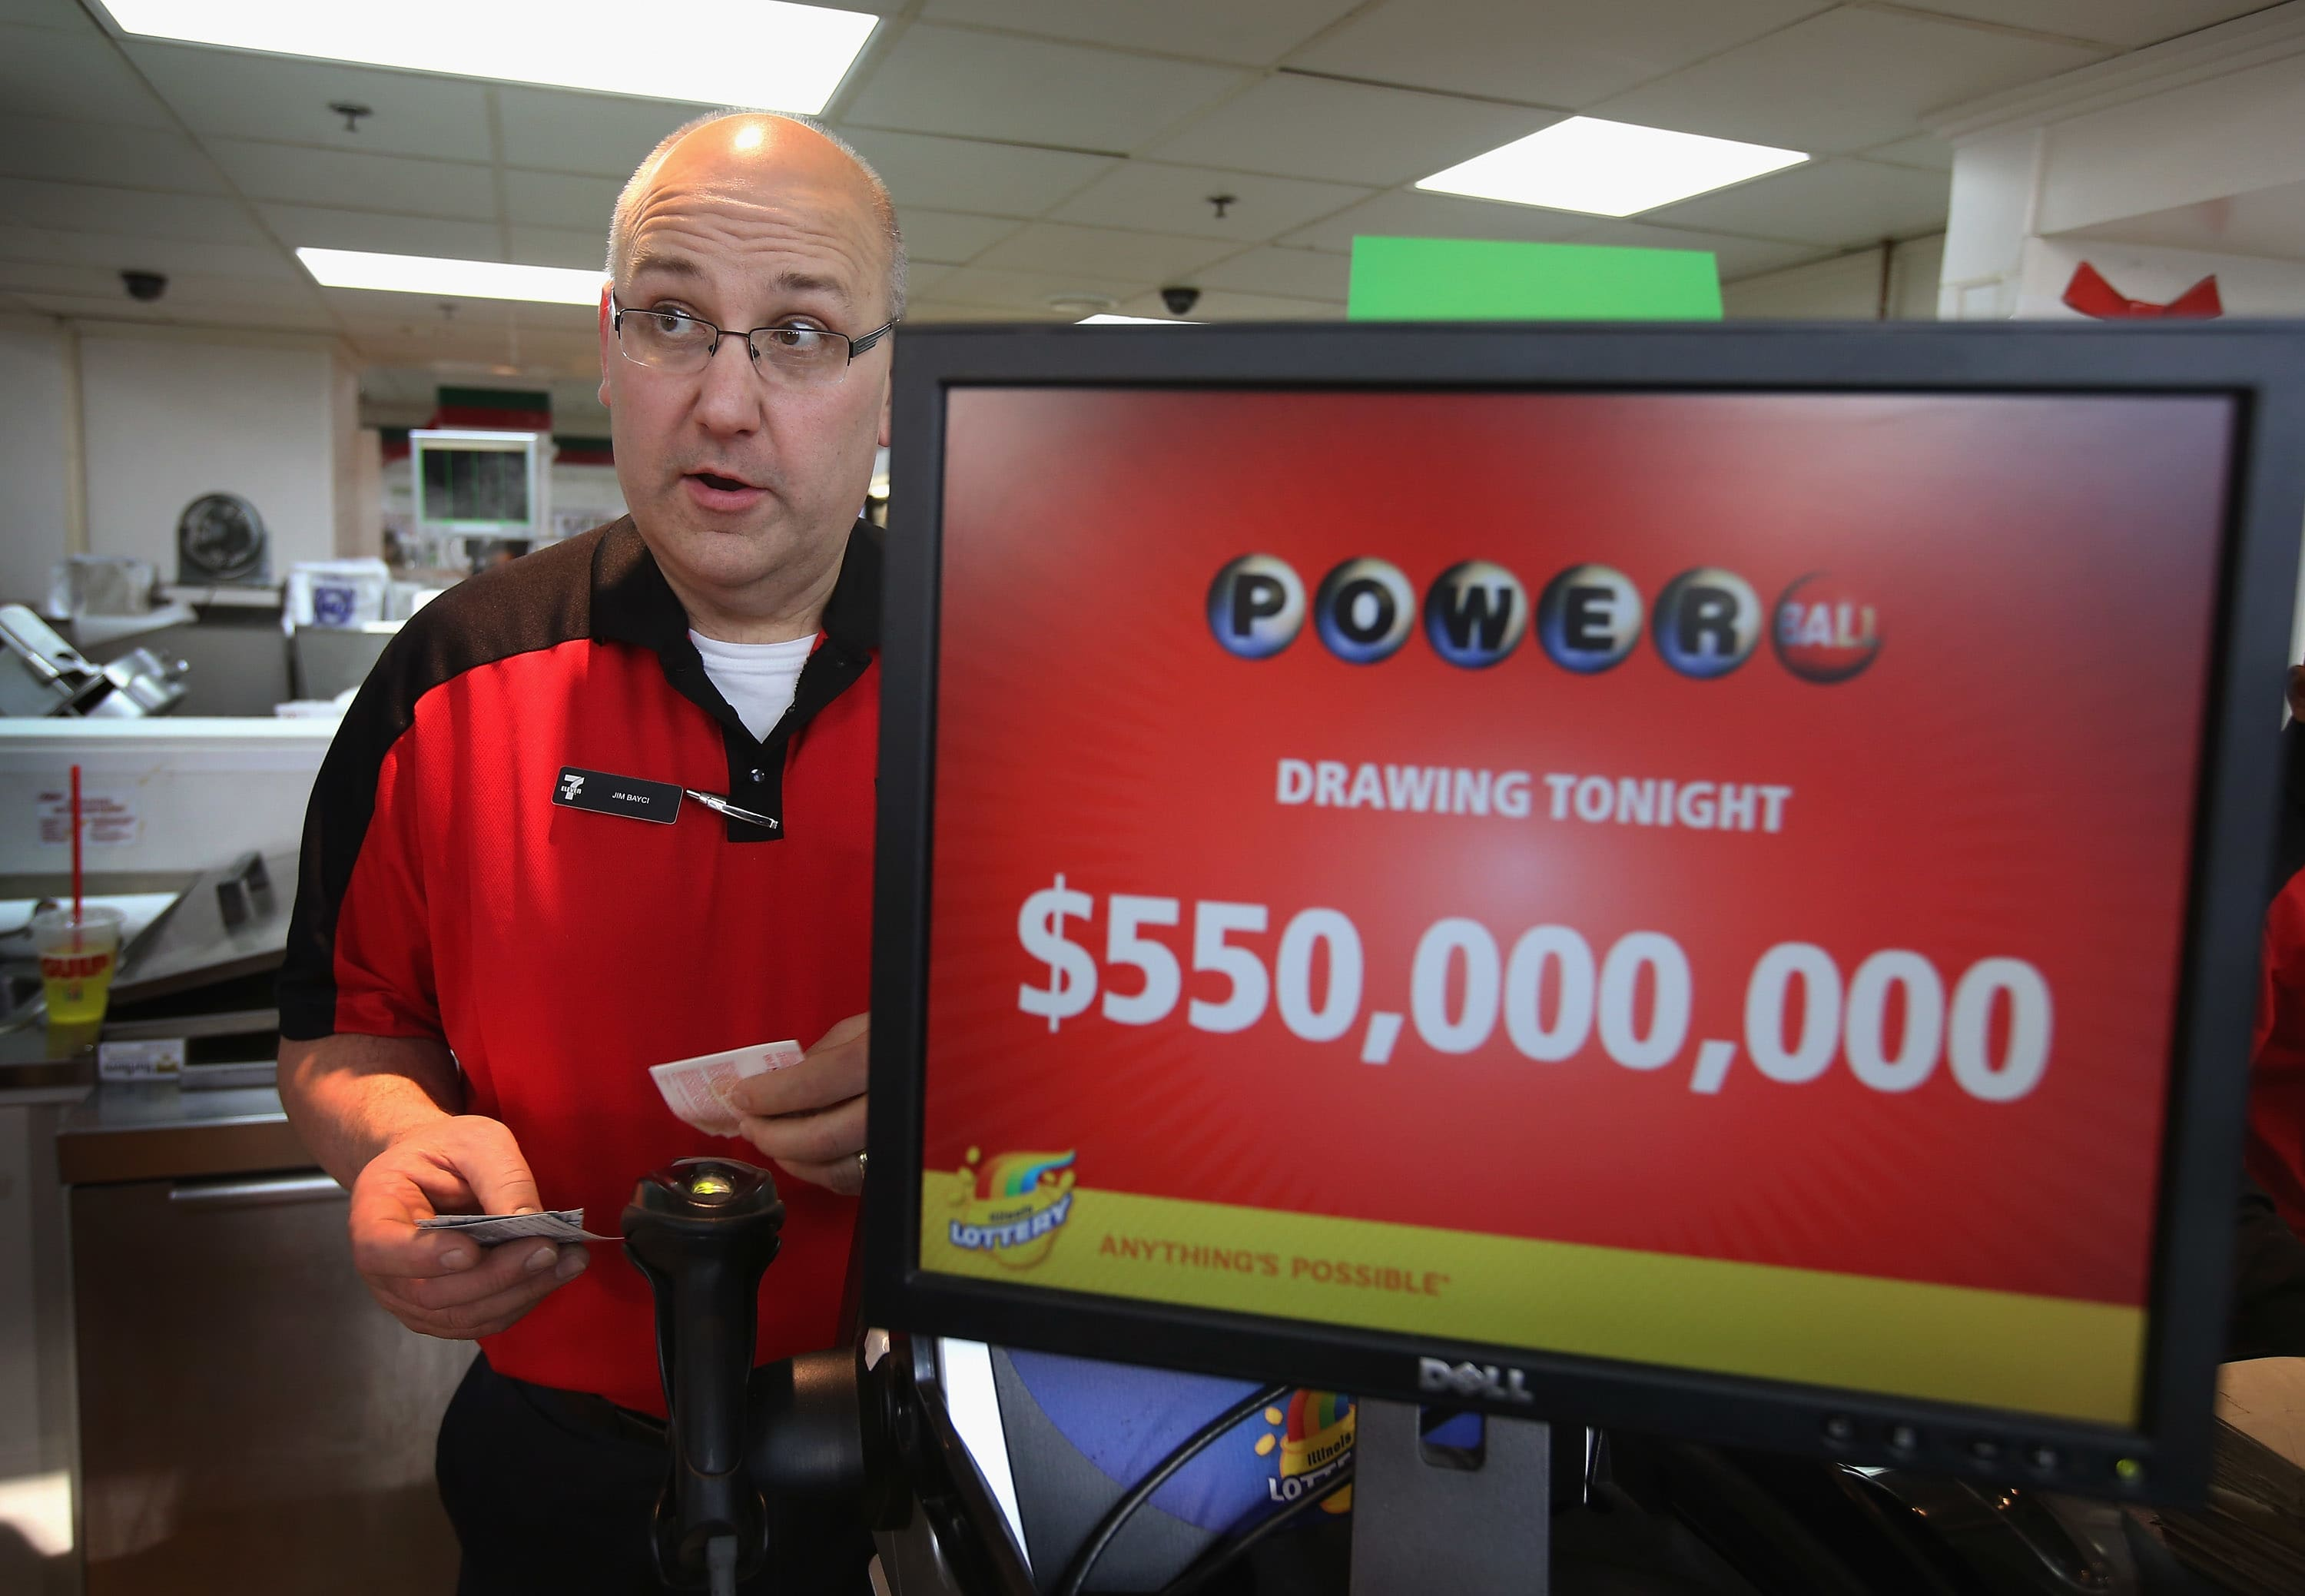 A store owner prints a Powerball lottery ticket for a customer at his 7-Eleven store on in Chicago, Illinois.